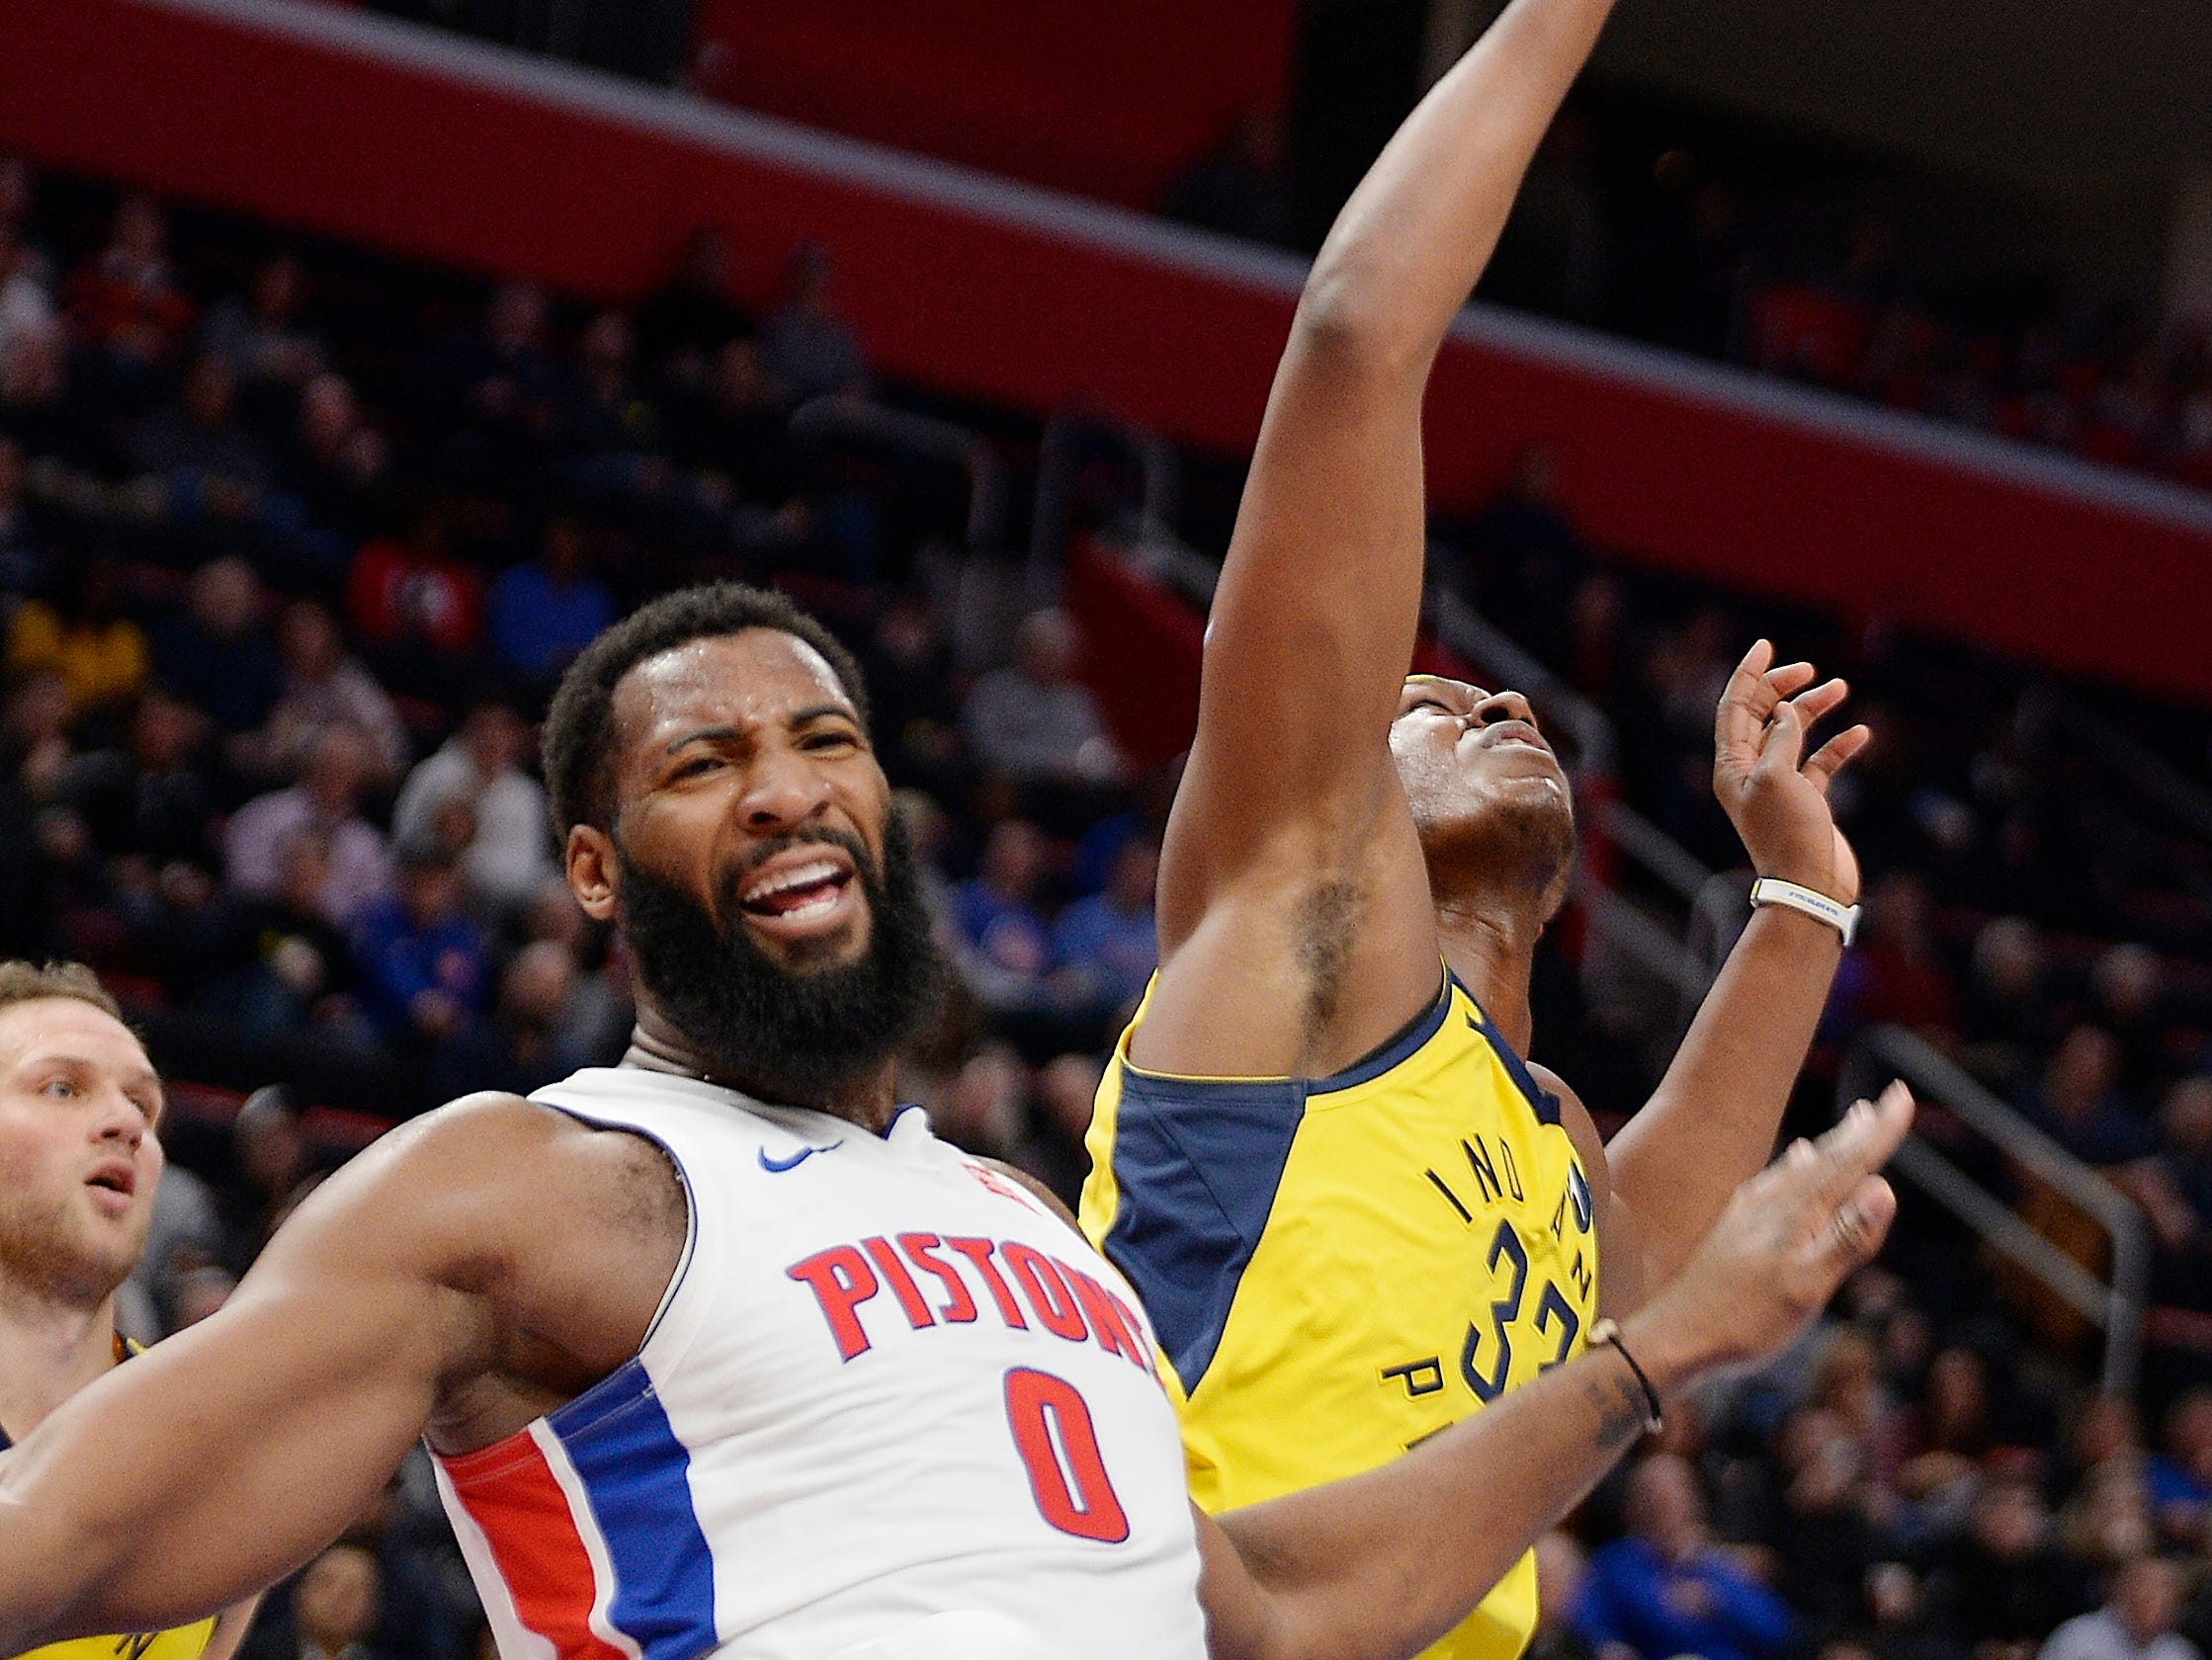 Detroit's Andre Drummond collides with Myles Turner after a shot attempt in the second quarter.